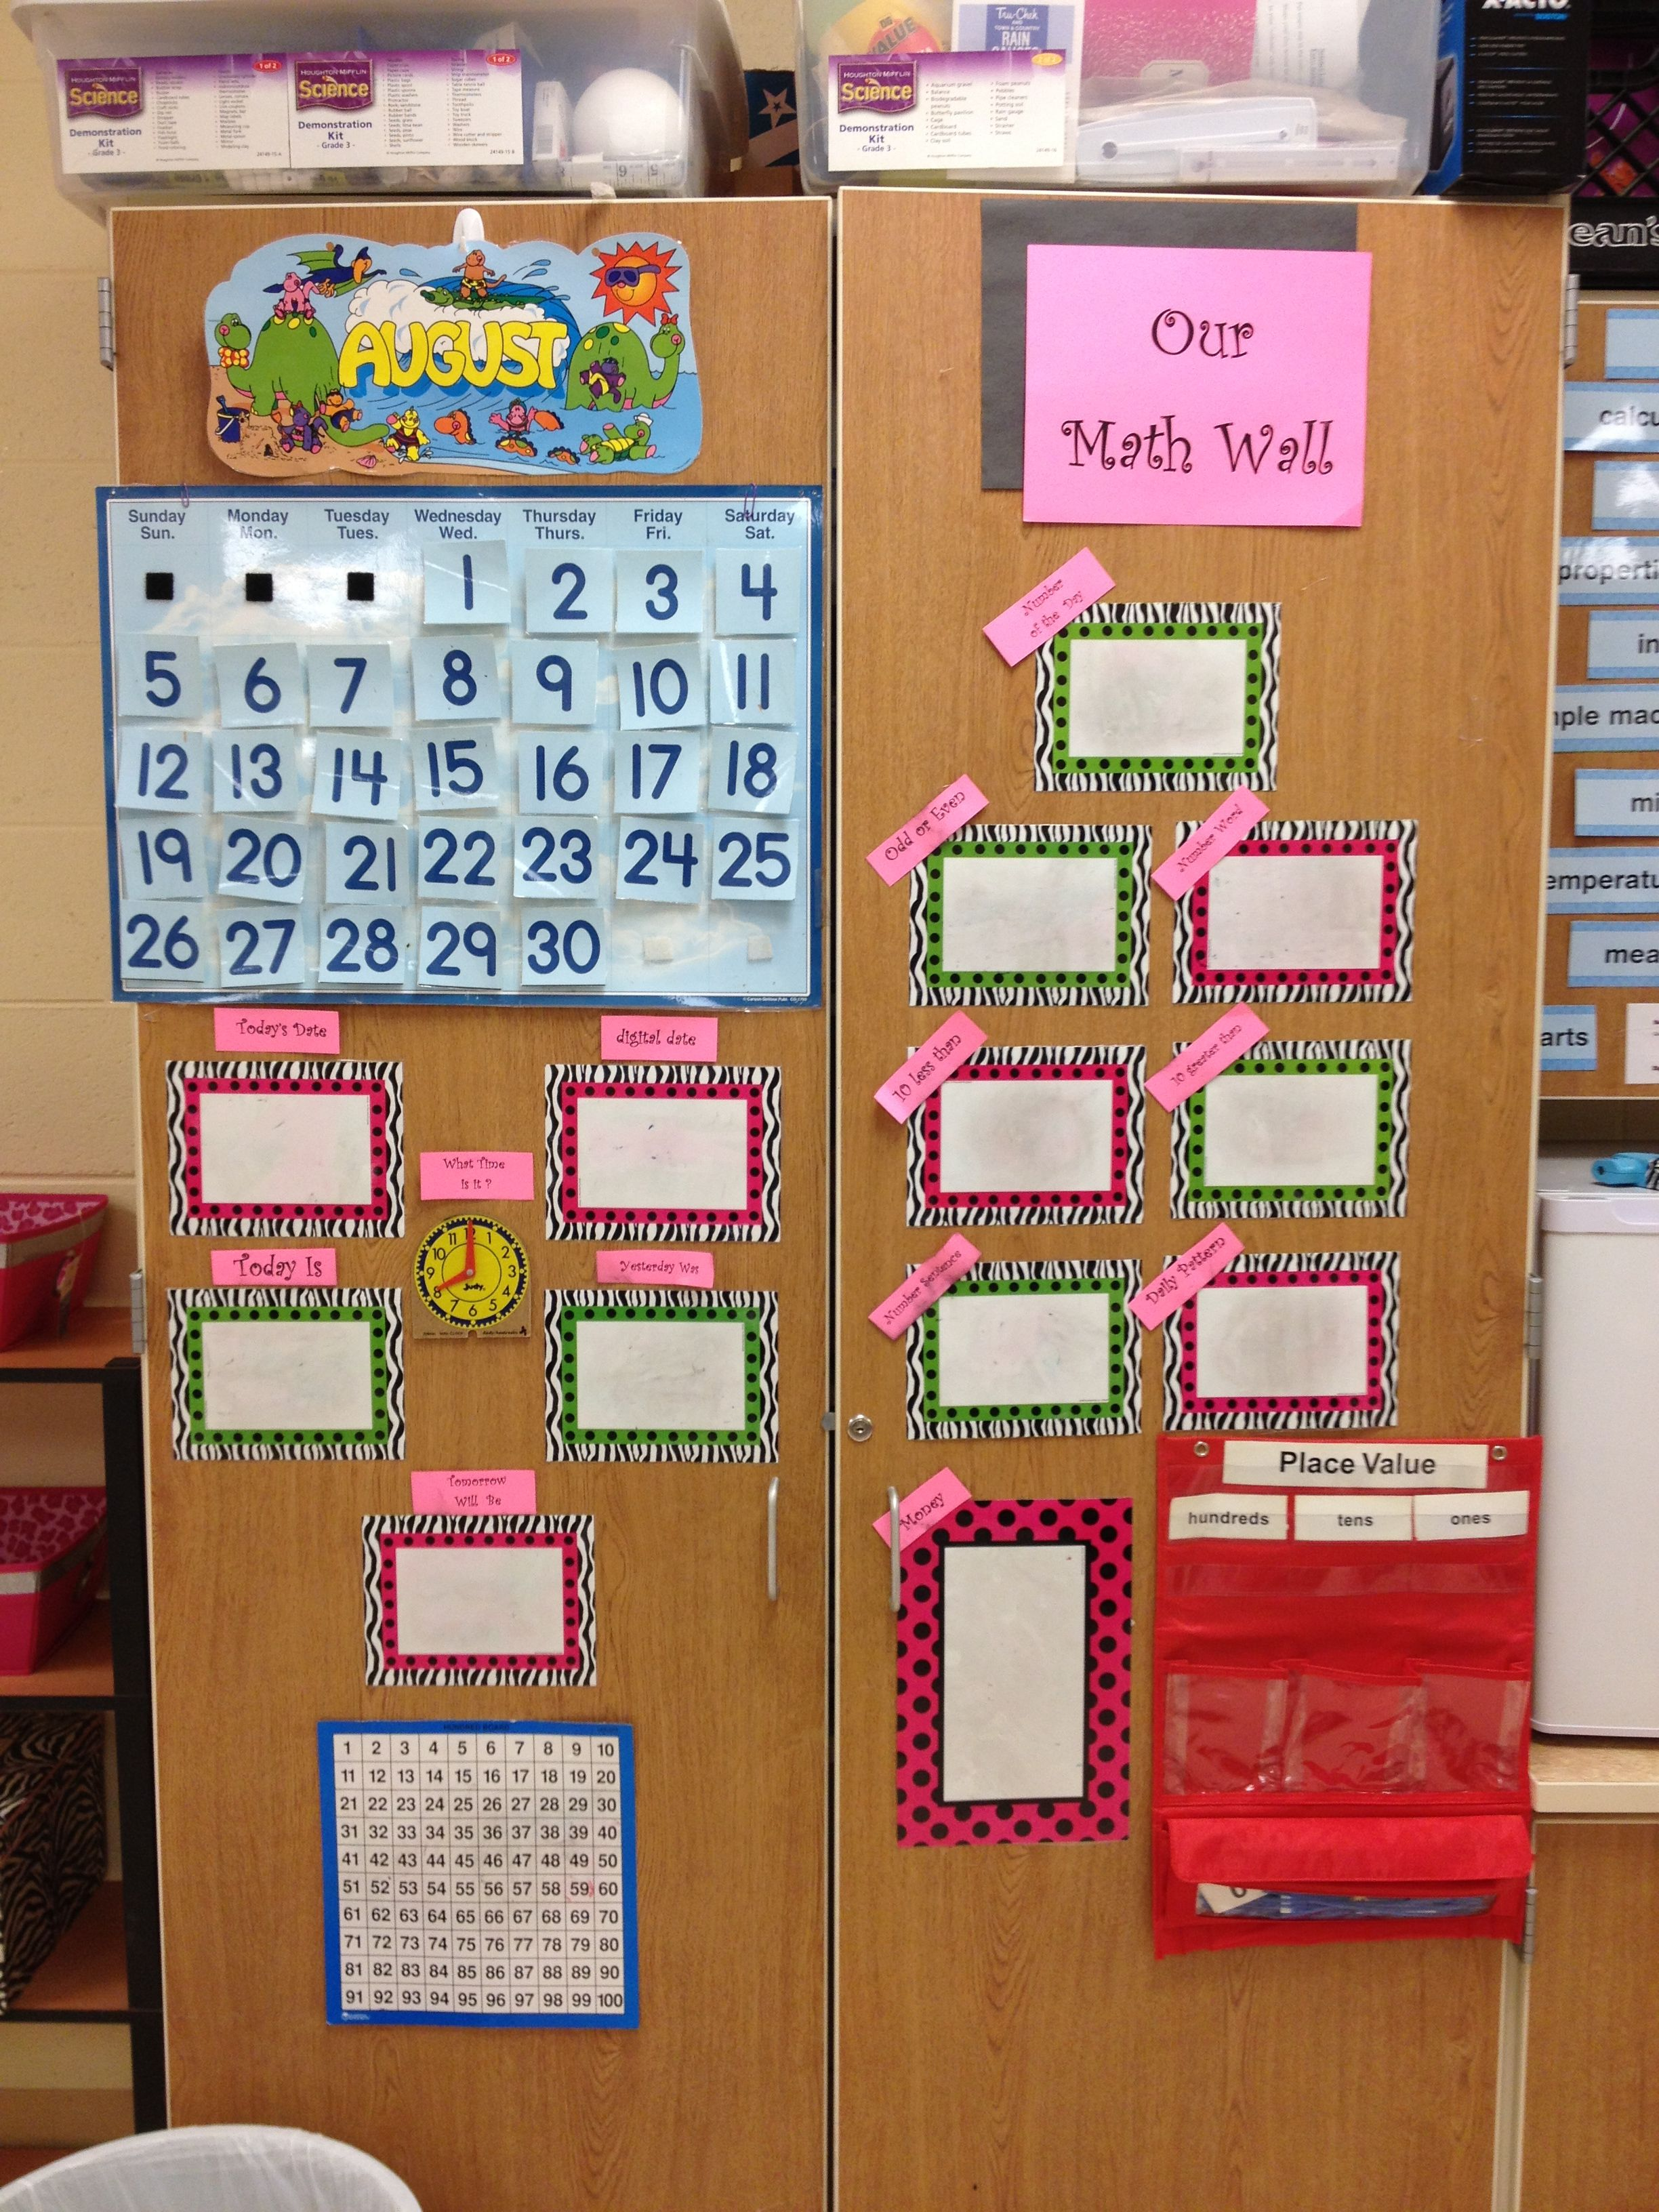 My math wall. Until I get my everyday counts calendar math kit gets here.